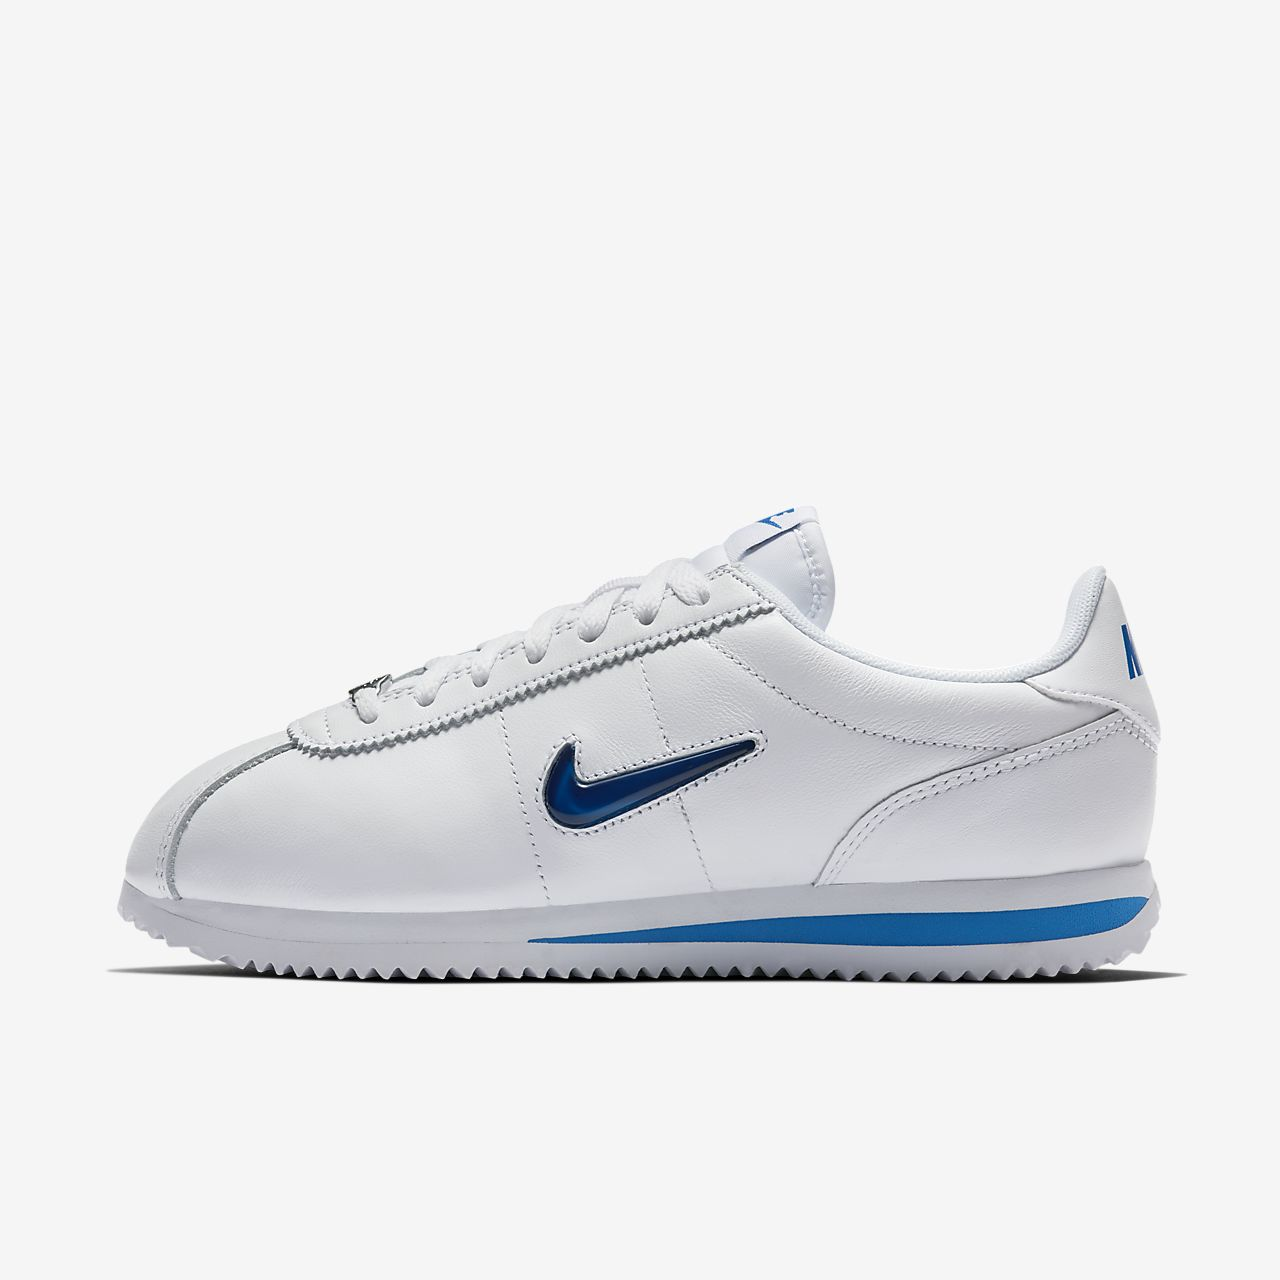 timeless design 83b6c 9a93a free shipping nike cortez jewel release 7d3eb 60621